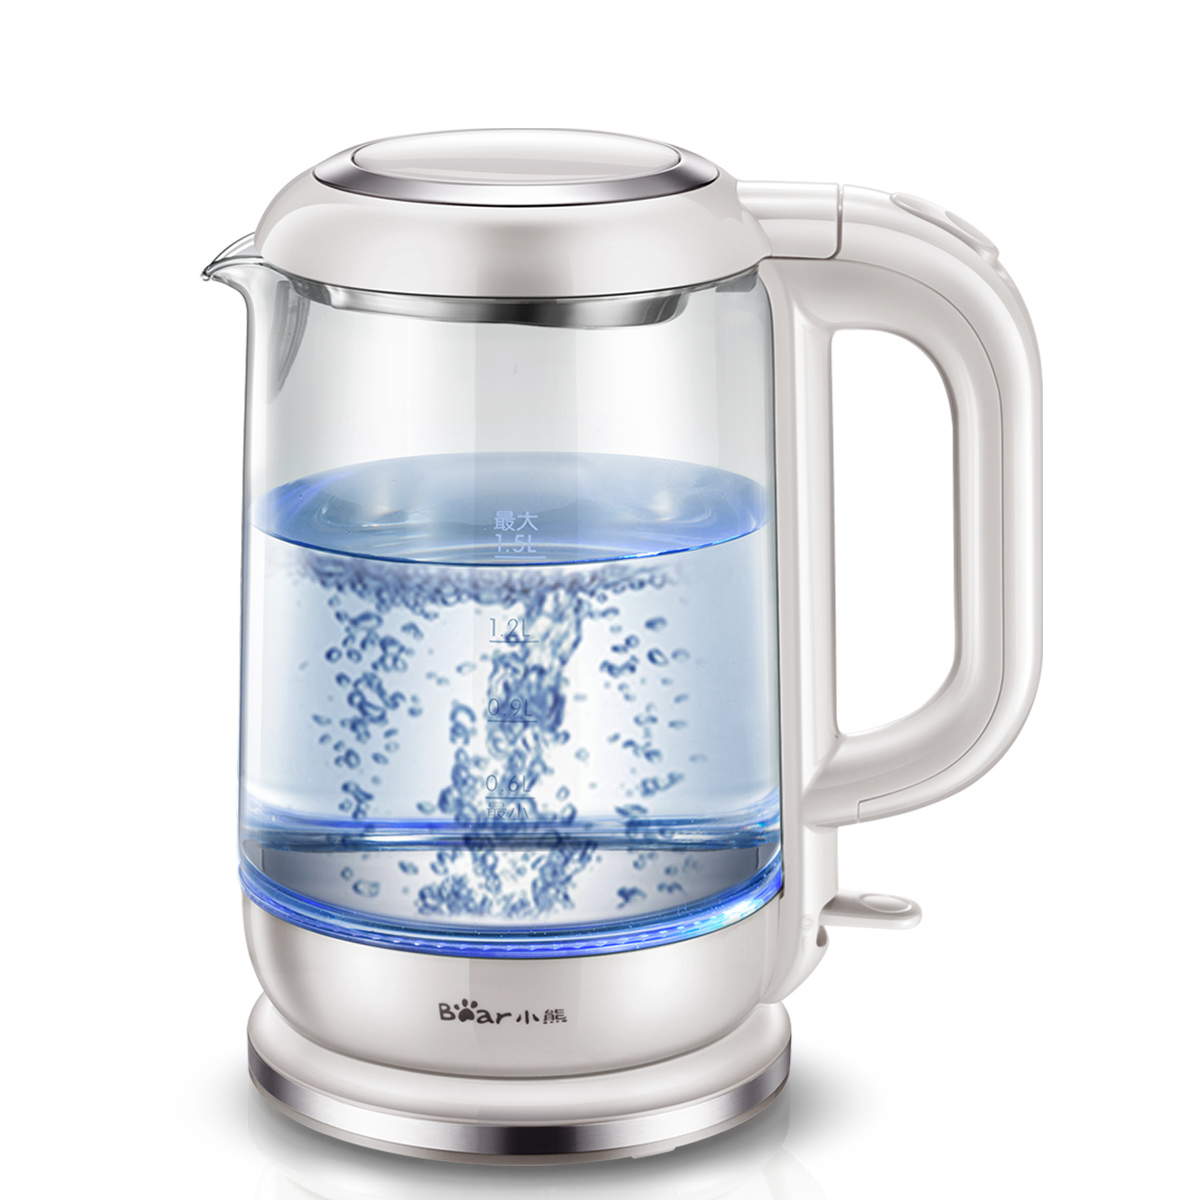 ZDH-A15D1 Household glass electric kettle Food grade 304 stainless steel Kettle